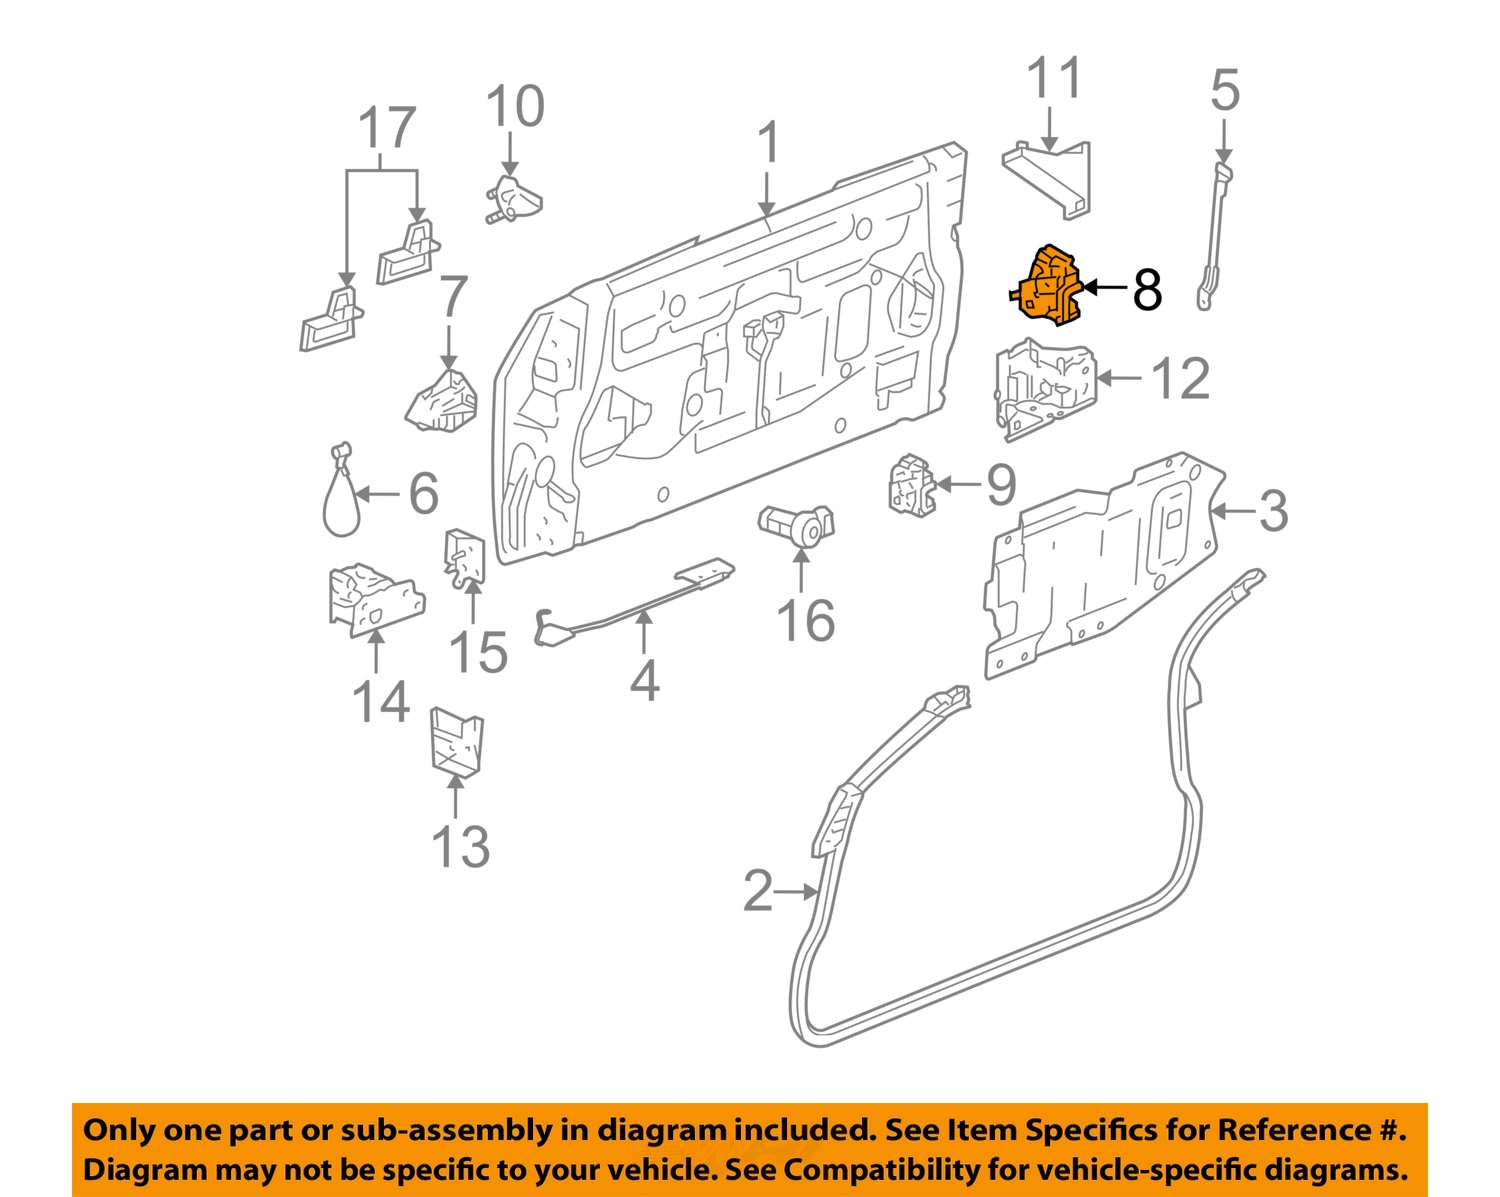 2004 gmc envoy xuv radio wiring diagram for motorcycle led lights tailgate parts engine auto